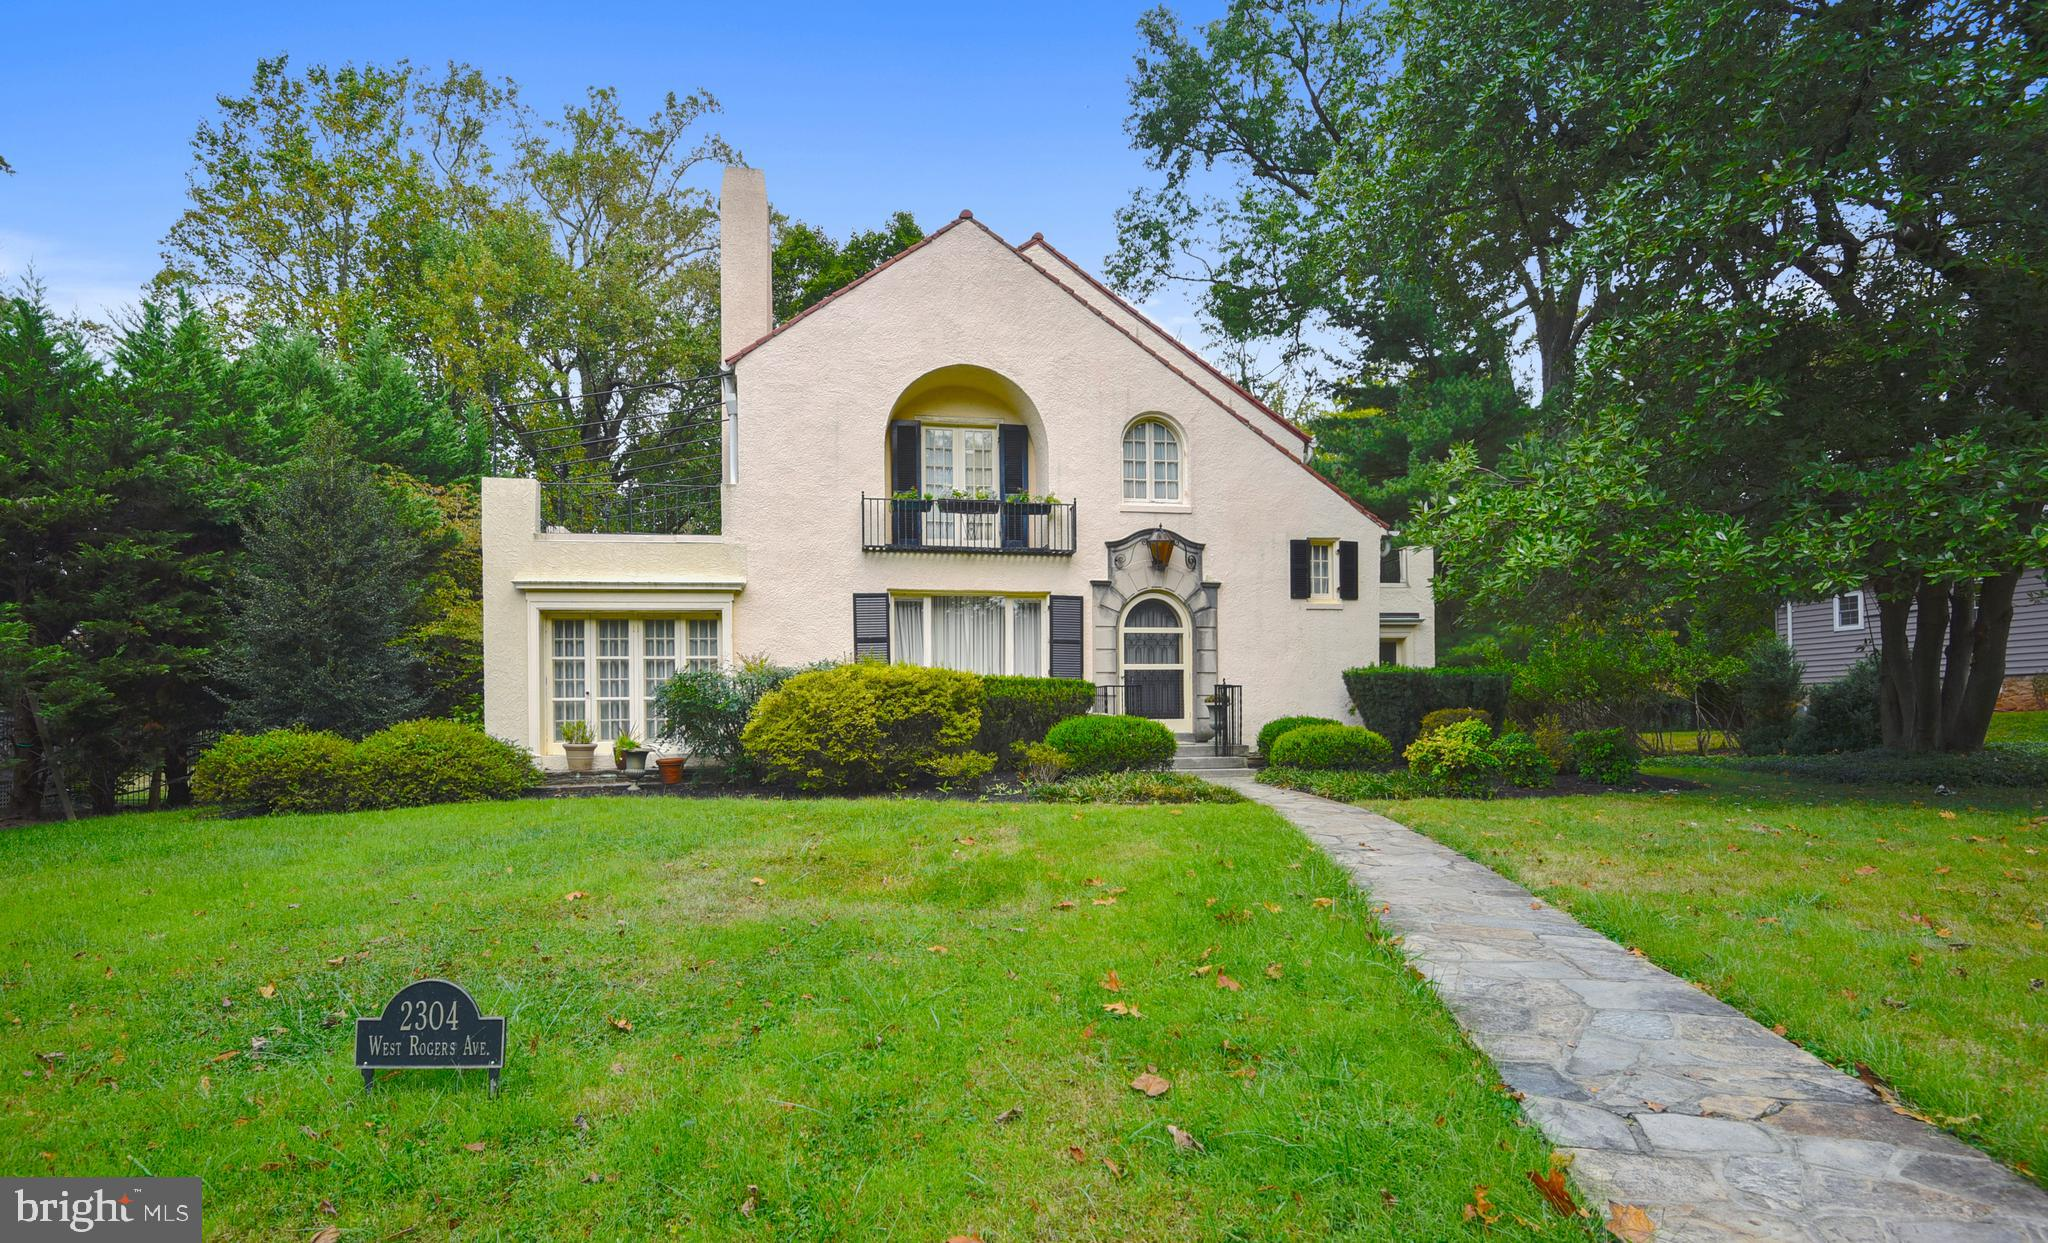 2304 W ROGERS AVENUE, BALTIMORE, MD 21209